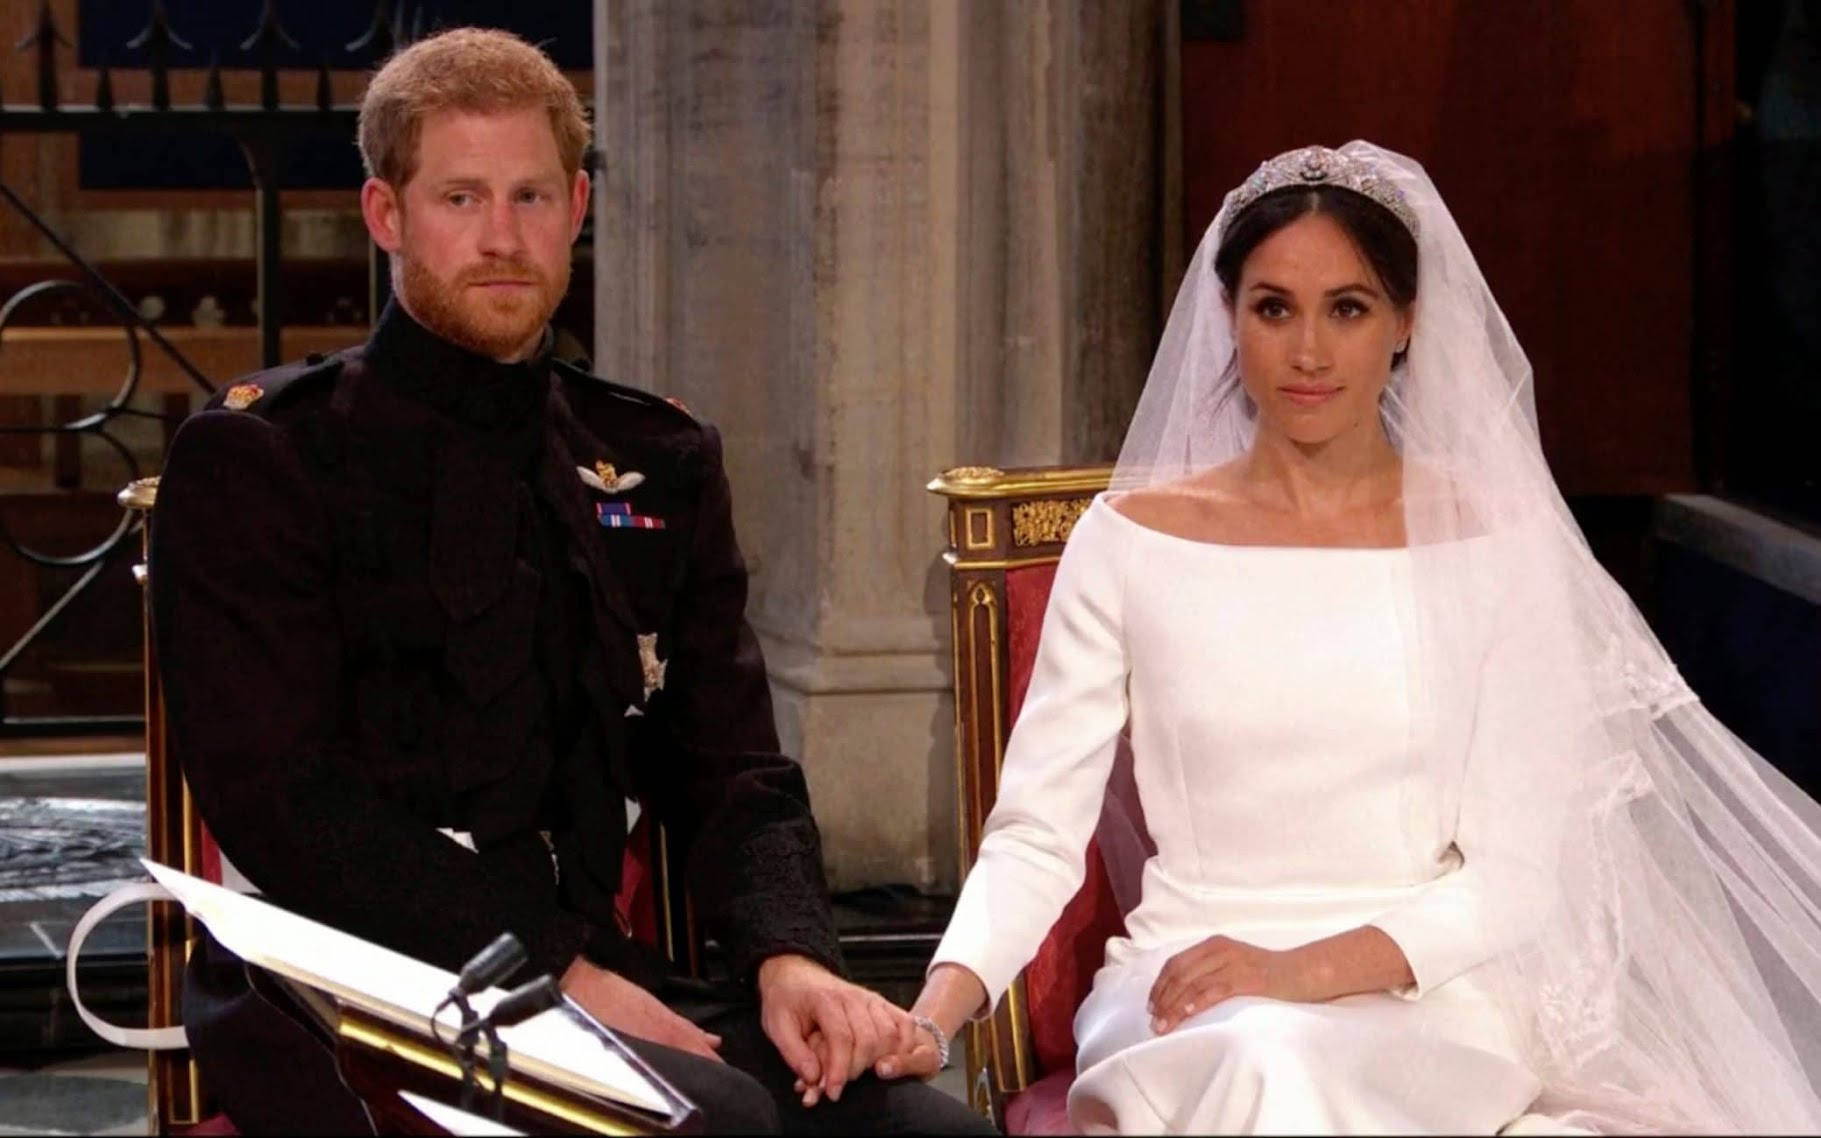 Prince Harry and Meghan Markle before they say their vows